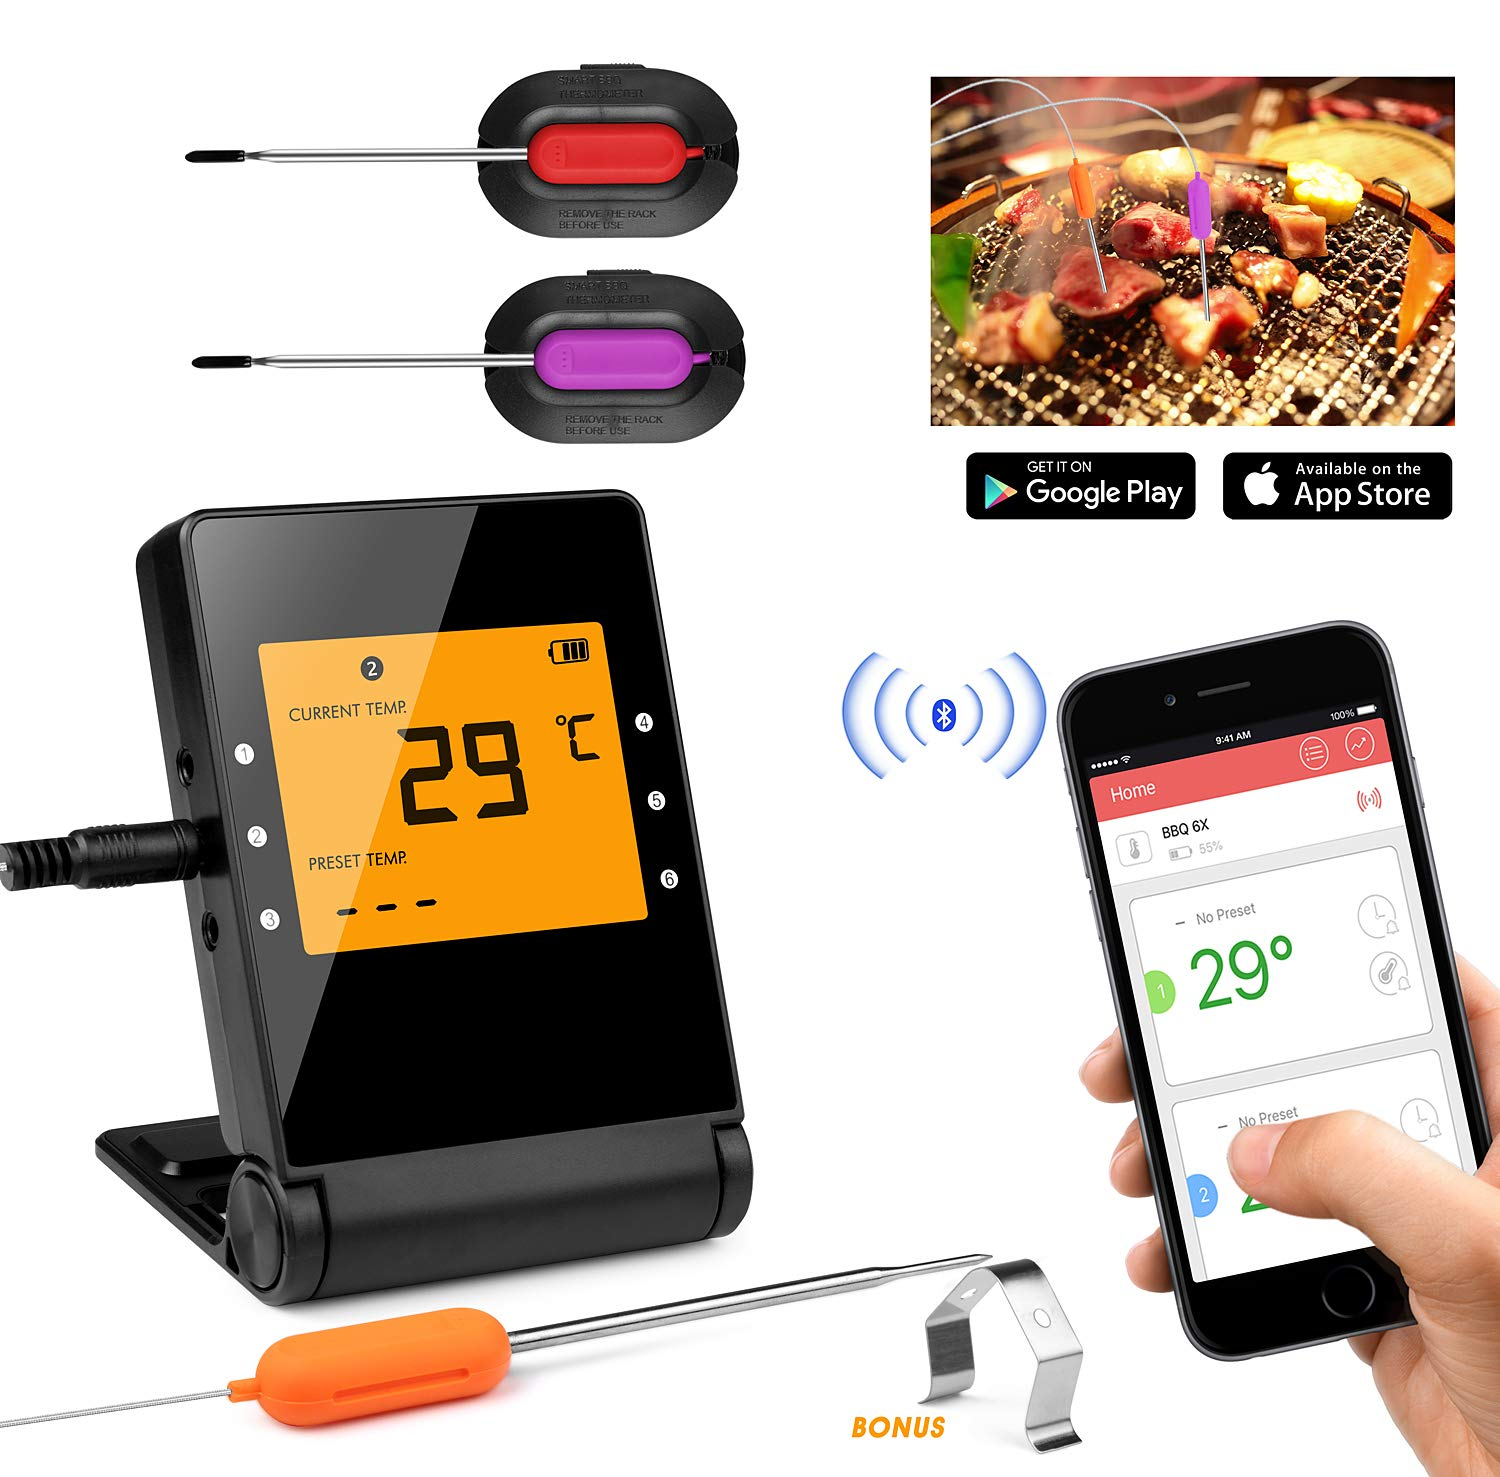 Shinmax Meat Thermometer, Wireless BBQ Thermometer,Bluetooth Smartphone Meat Thermometer with 2 Stainless Steel Probes Remote Monitor for Grilling, Cooking Kitchen Oven, for iOS & Android